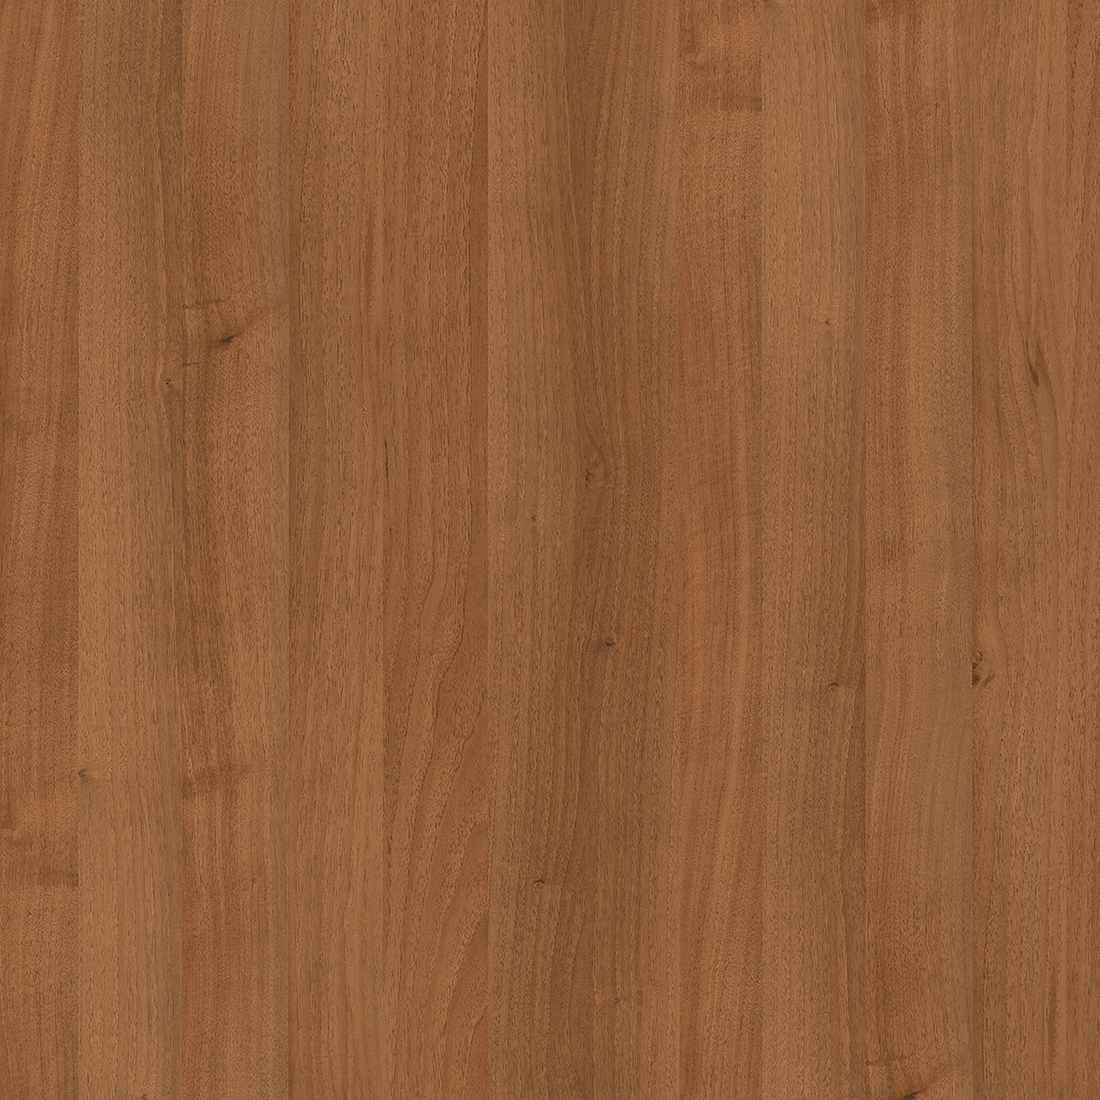 Guarnieri Walnut